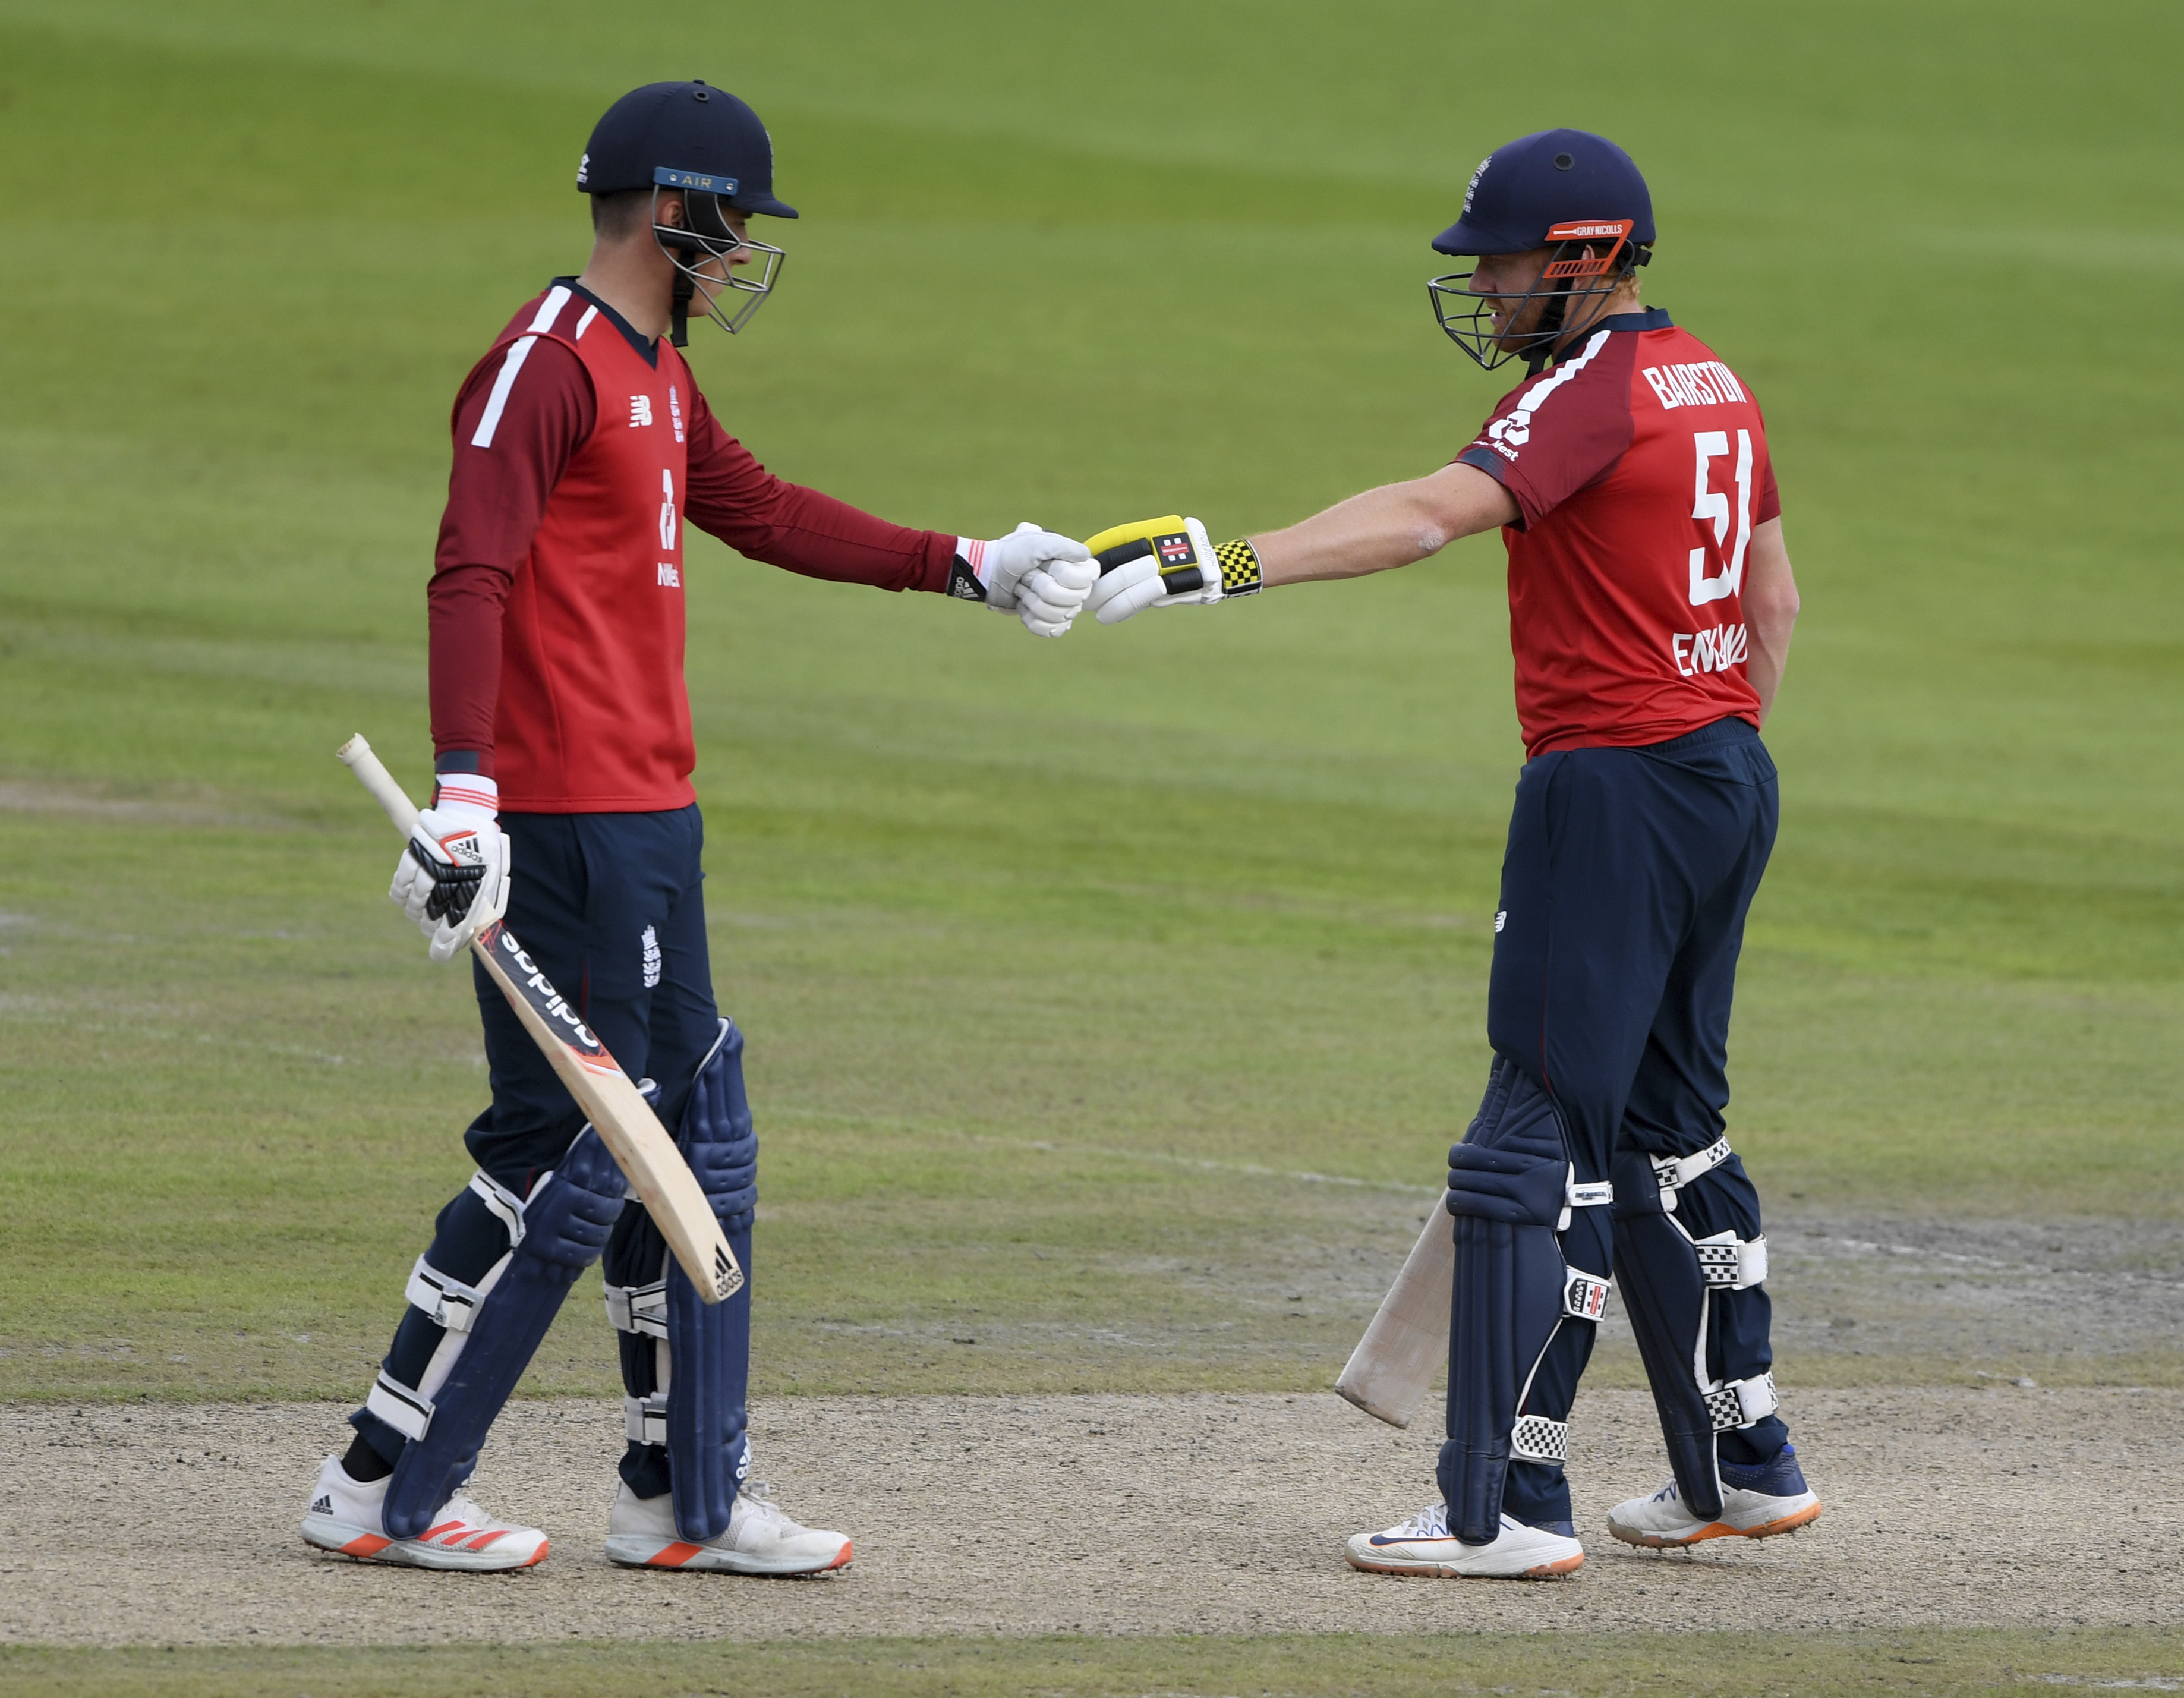 England's Tom Banton, left, fist bumps with batting partner Jonny Bairstow during the second Twenty20 cricket match between England and Pakistan, at Old Trafford in Manchester, England, Sunday, Aug. 30, 2020. (Mike Hewitt/Pool via AP)